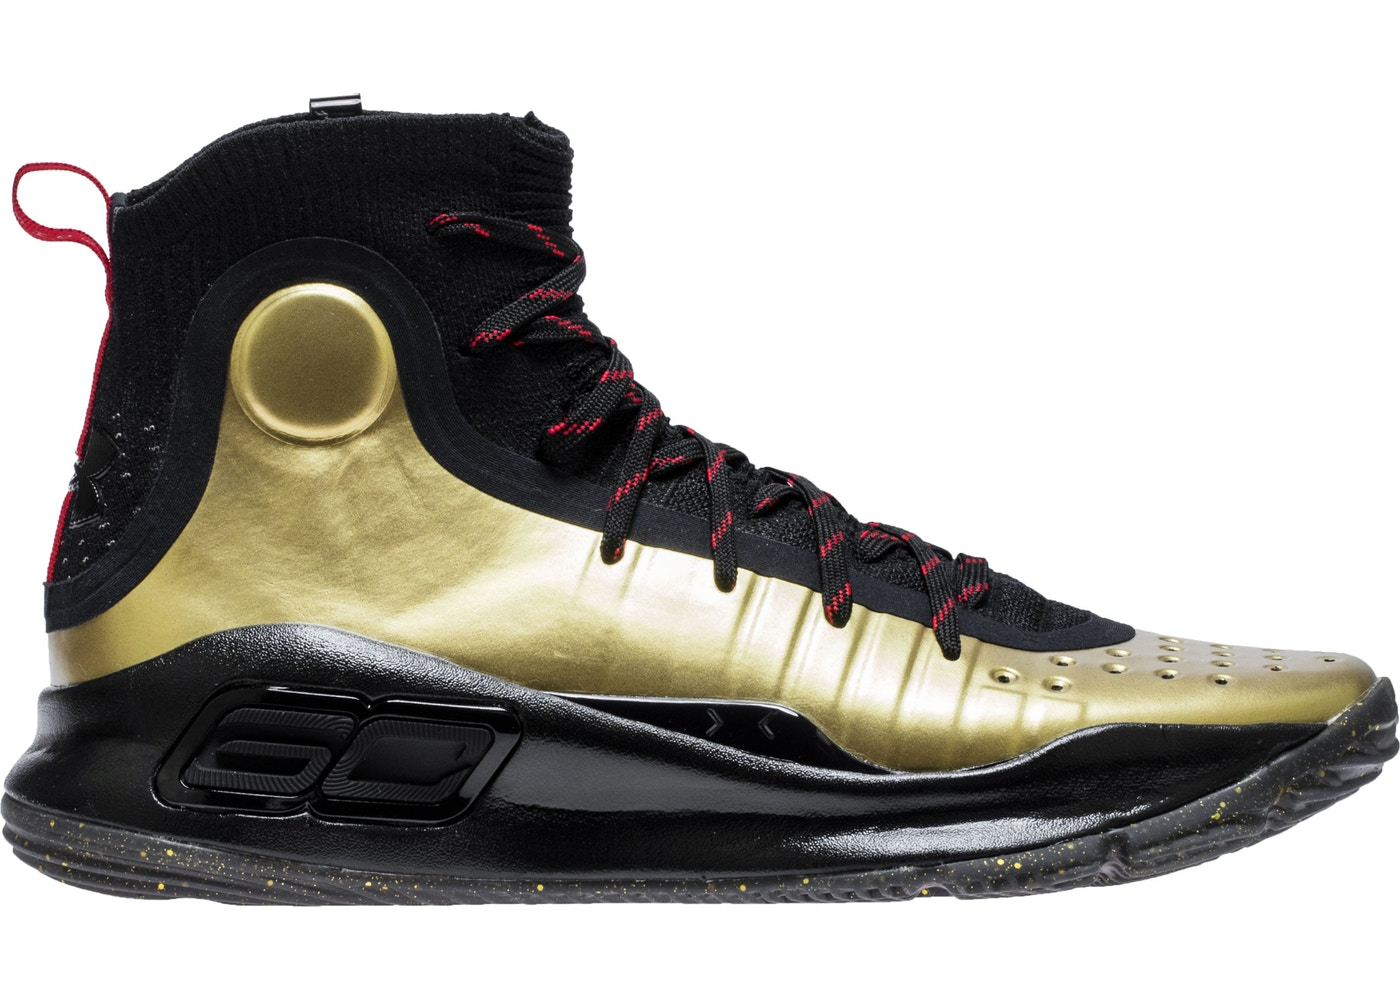 e7f2632076c0 Under Armour Curry 4 Shoe Palace 25th Anniversary - 3022393-001